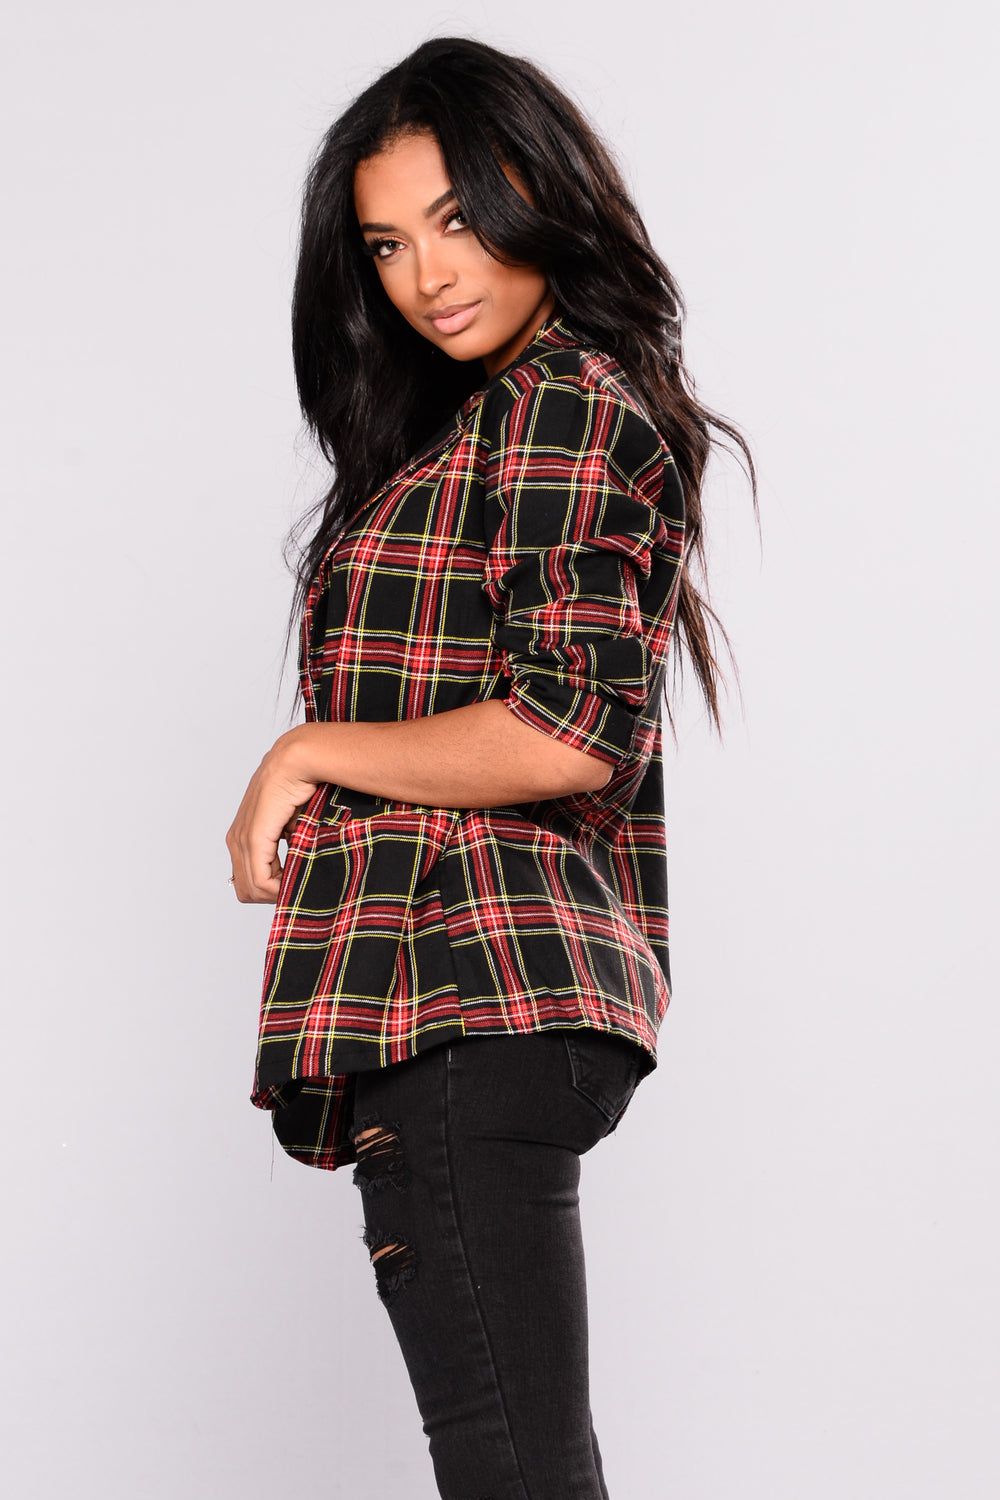 Smart Aleck Plaid Jacket - Black